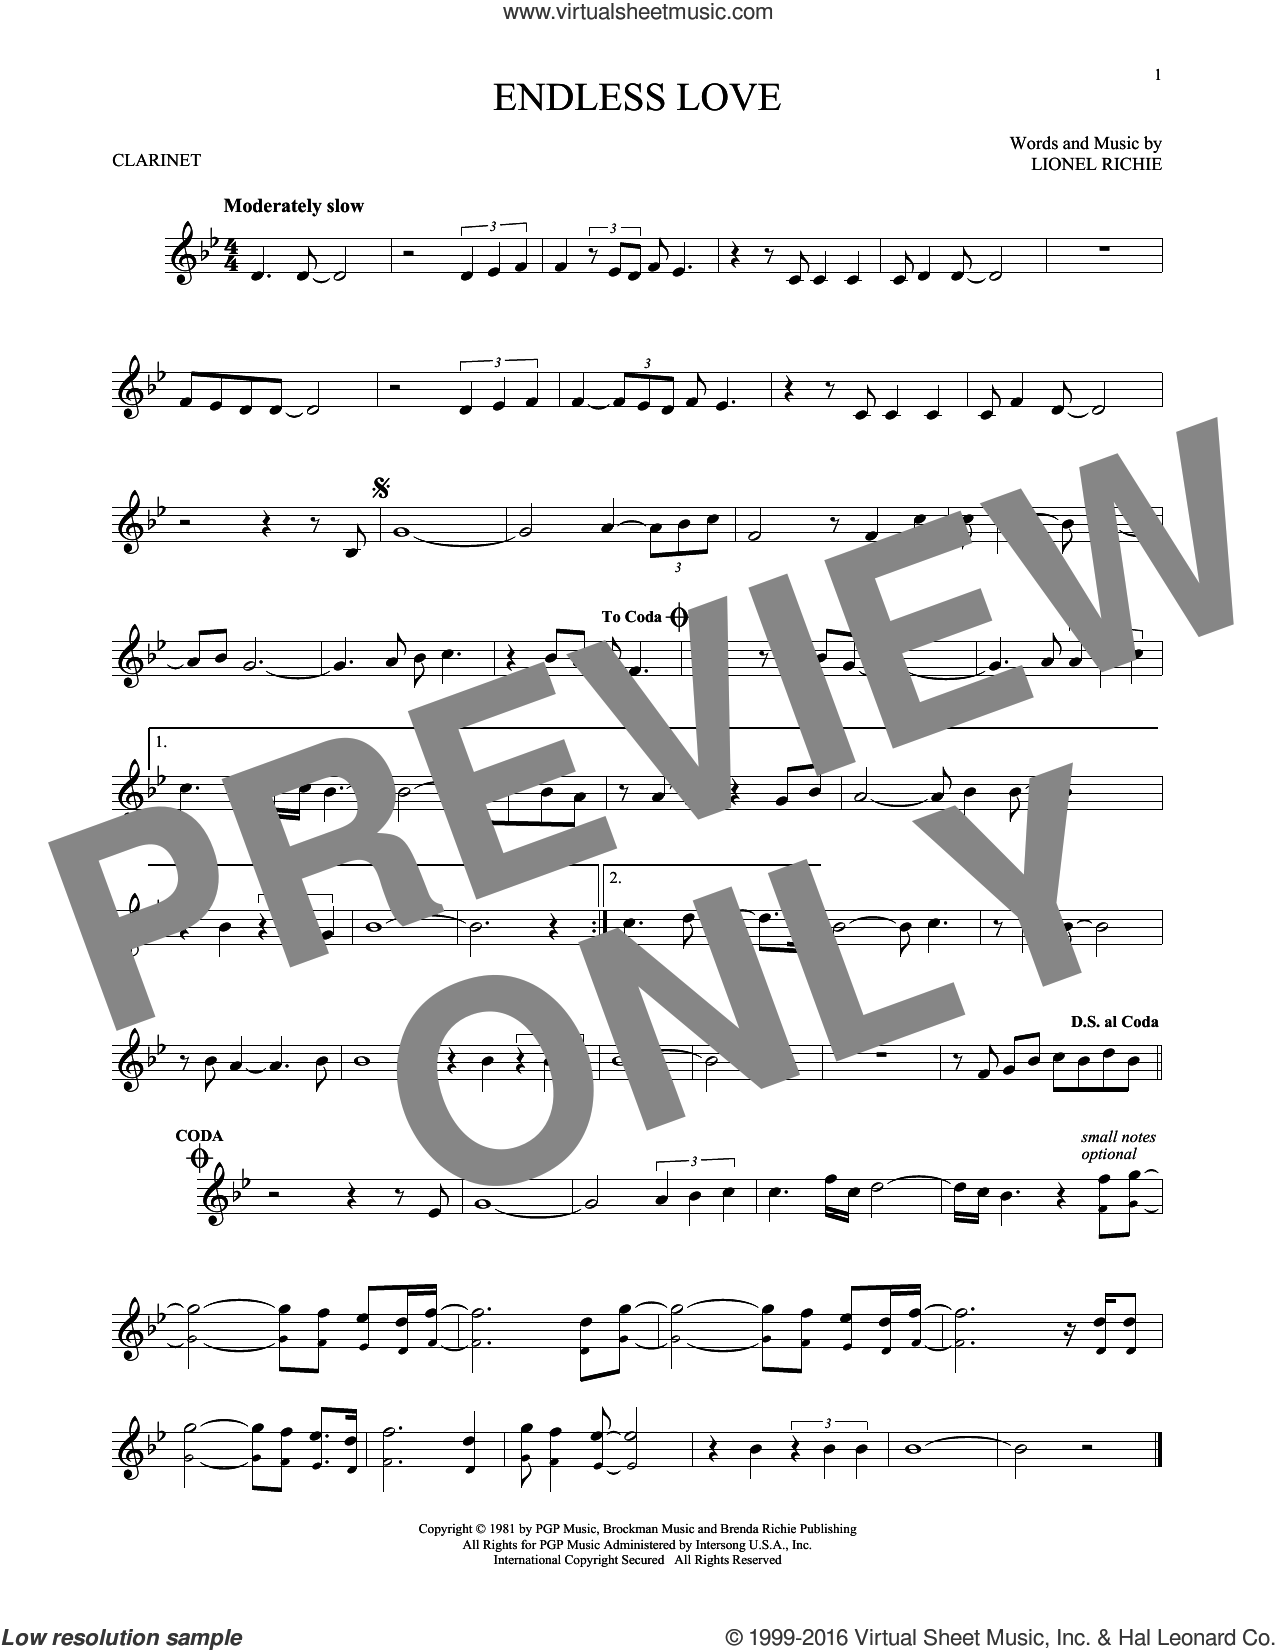 Endless Love sheet music for clarinet solo by Diana Ross & Lionel Richie, intermediate skill level